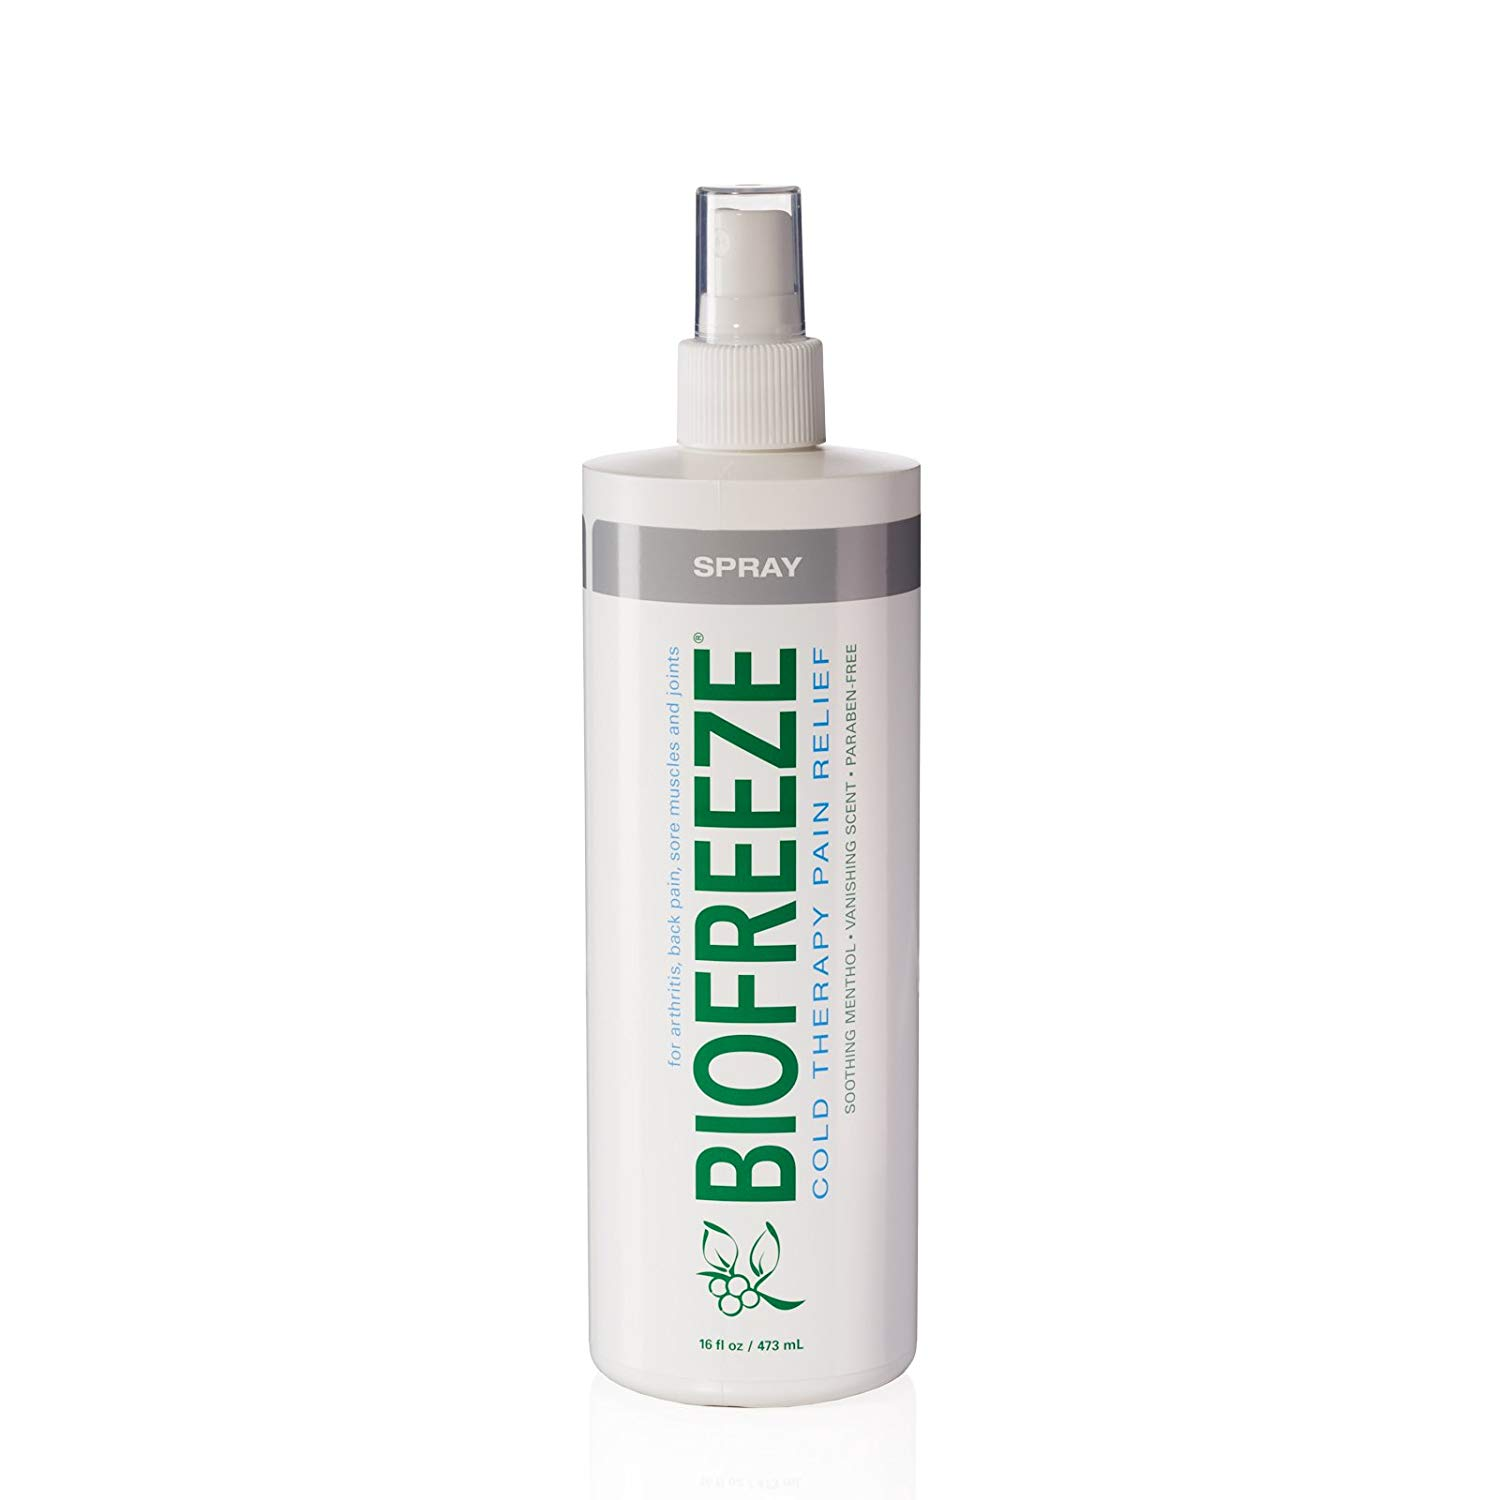 Biofreeze Pain Relief Spray for Arthritis